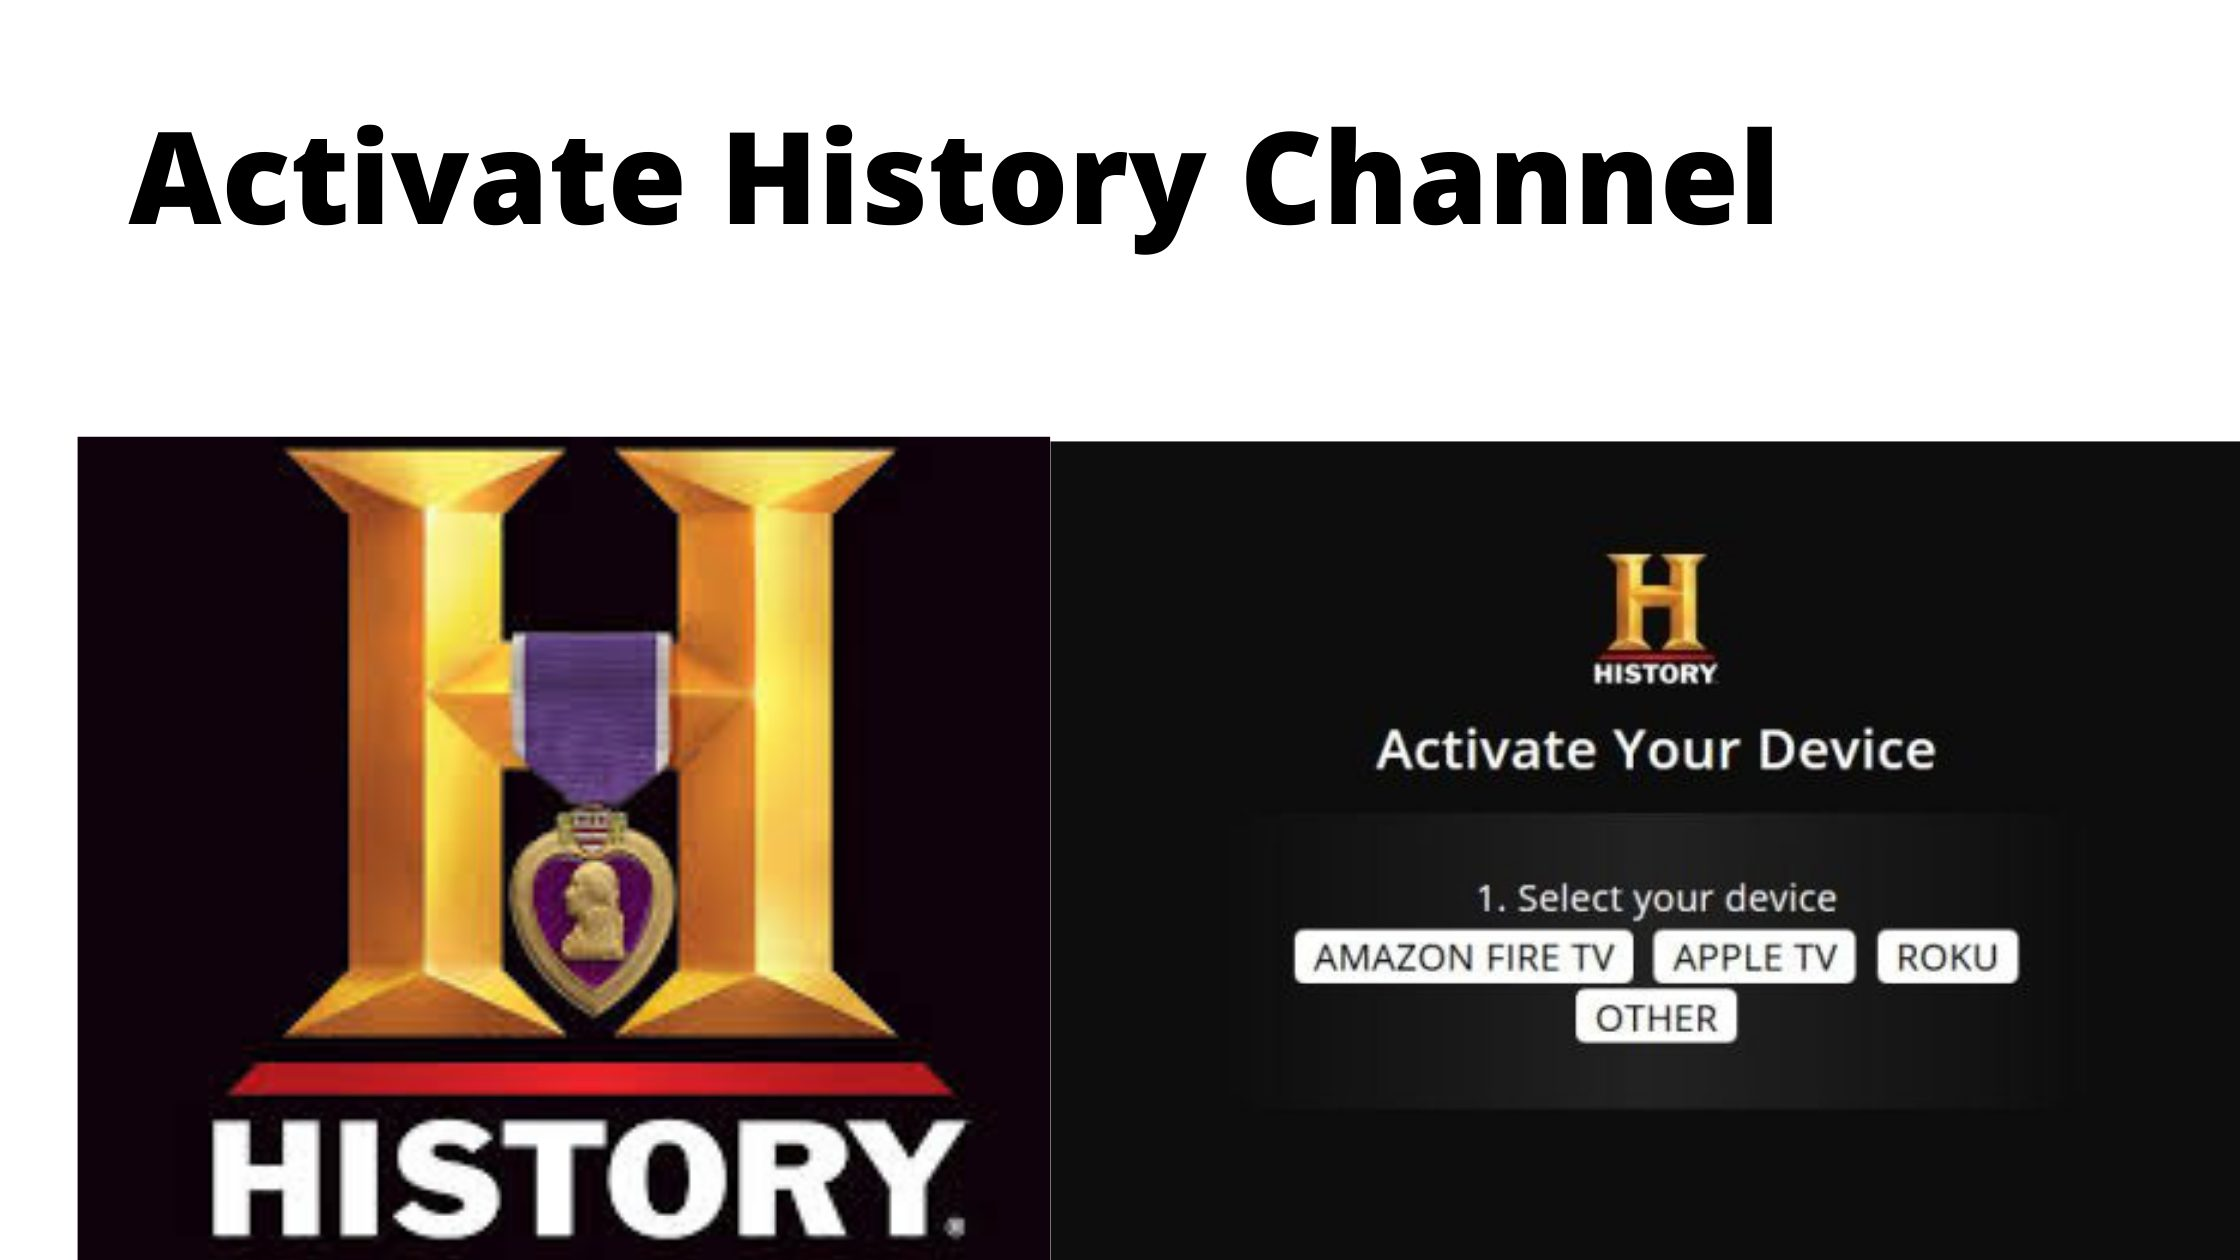 Activate History Channel